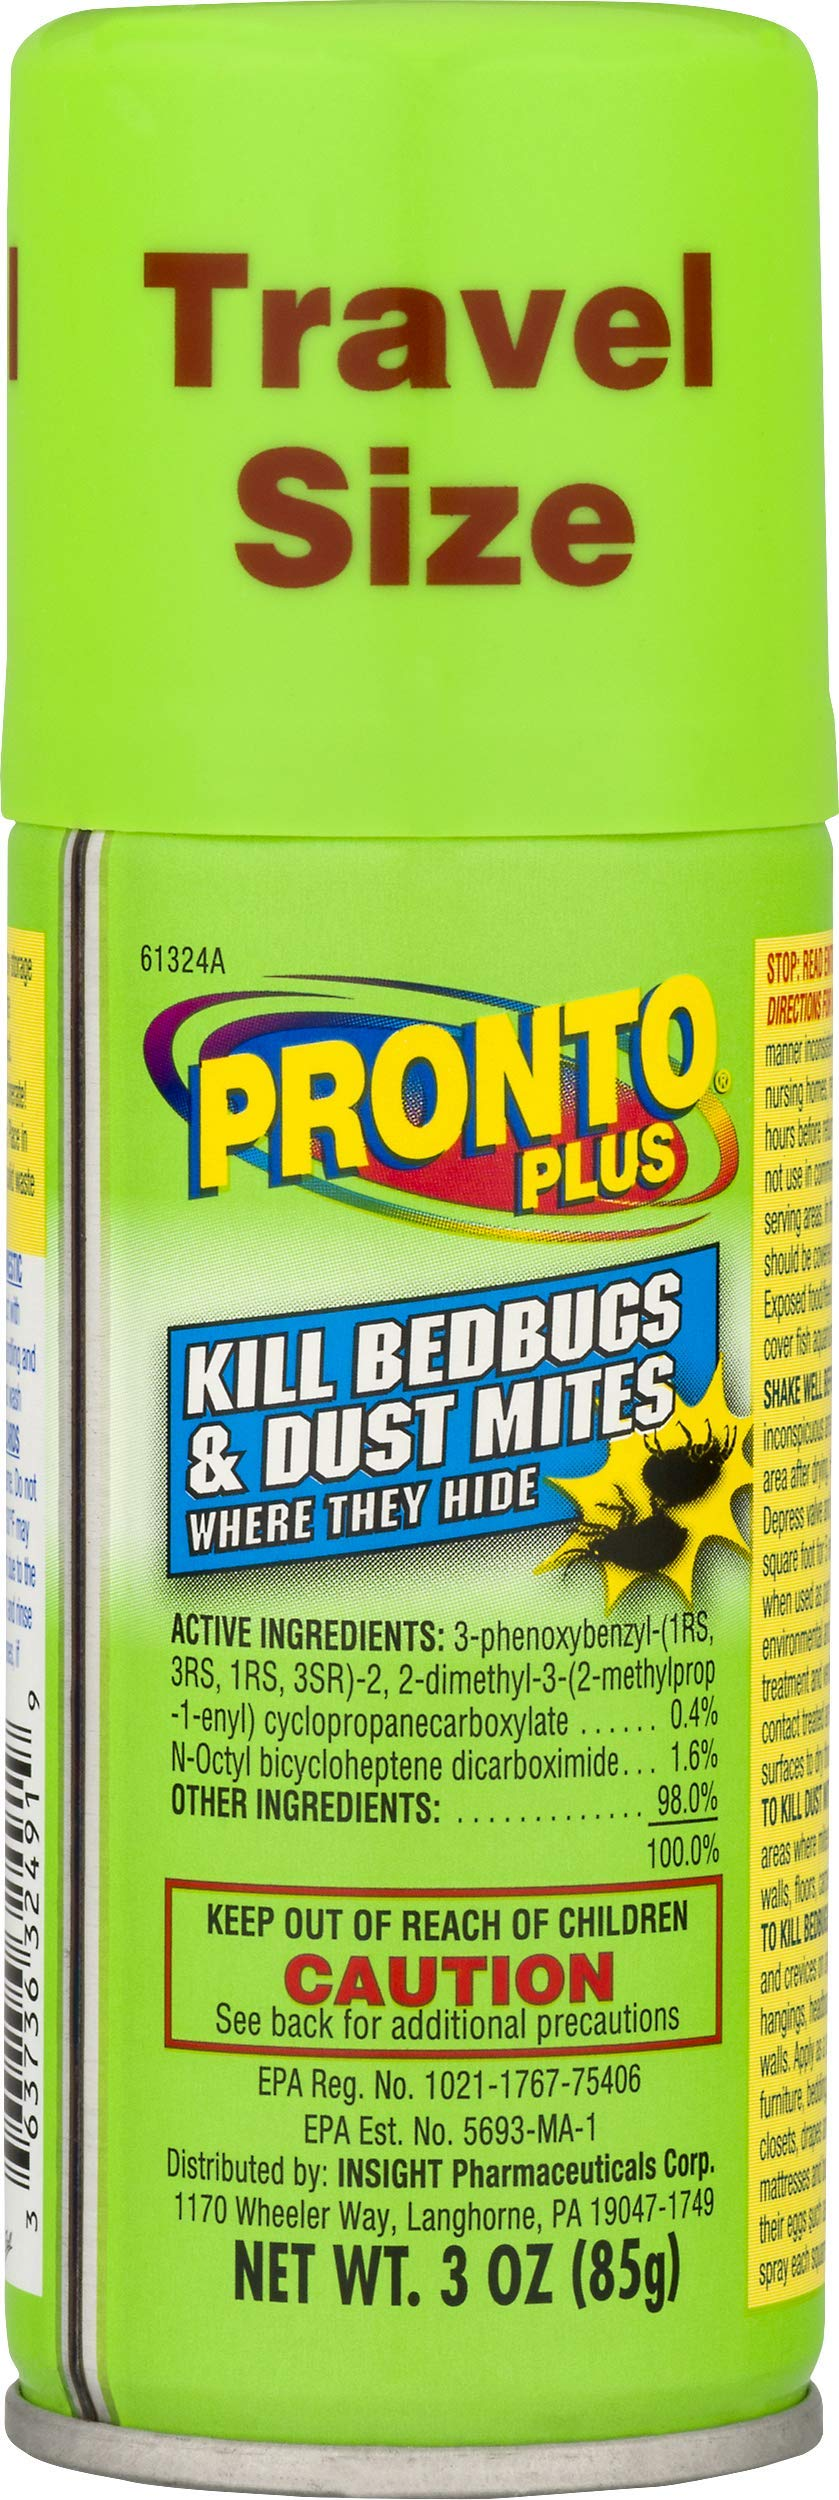 Pronto Plus | Kills Bedbugs & Dust Mites | 3 oz | Pack of 4